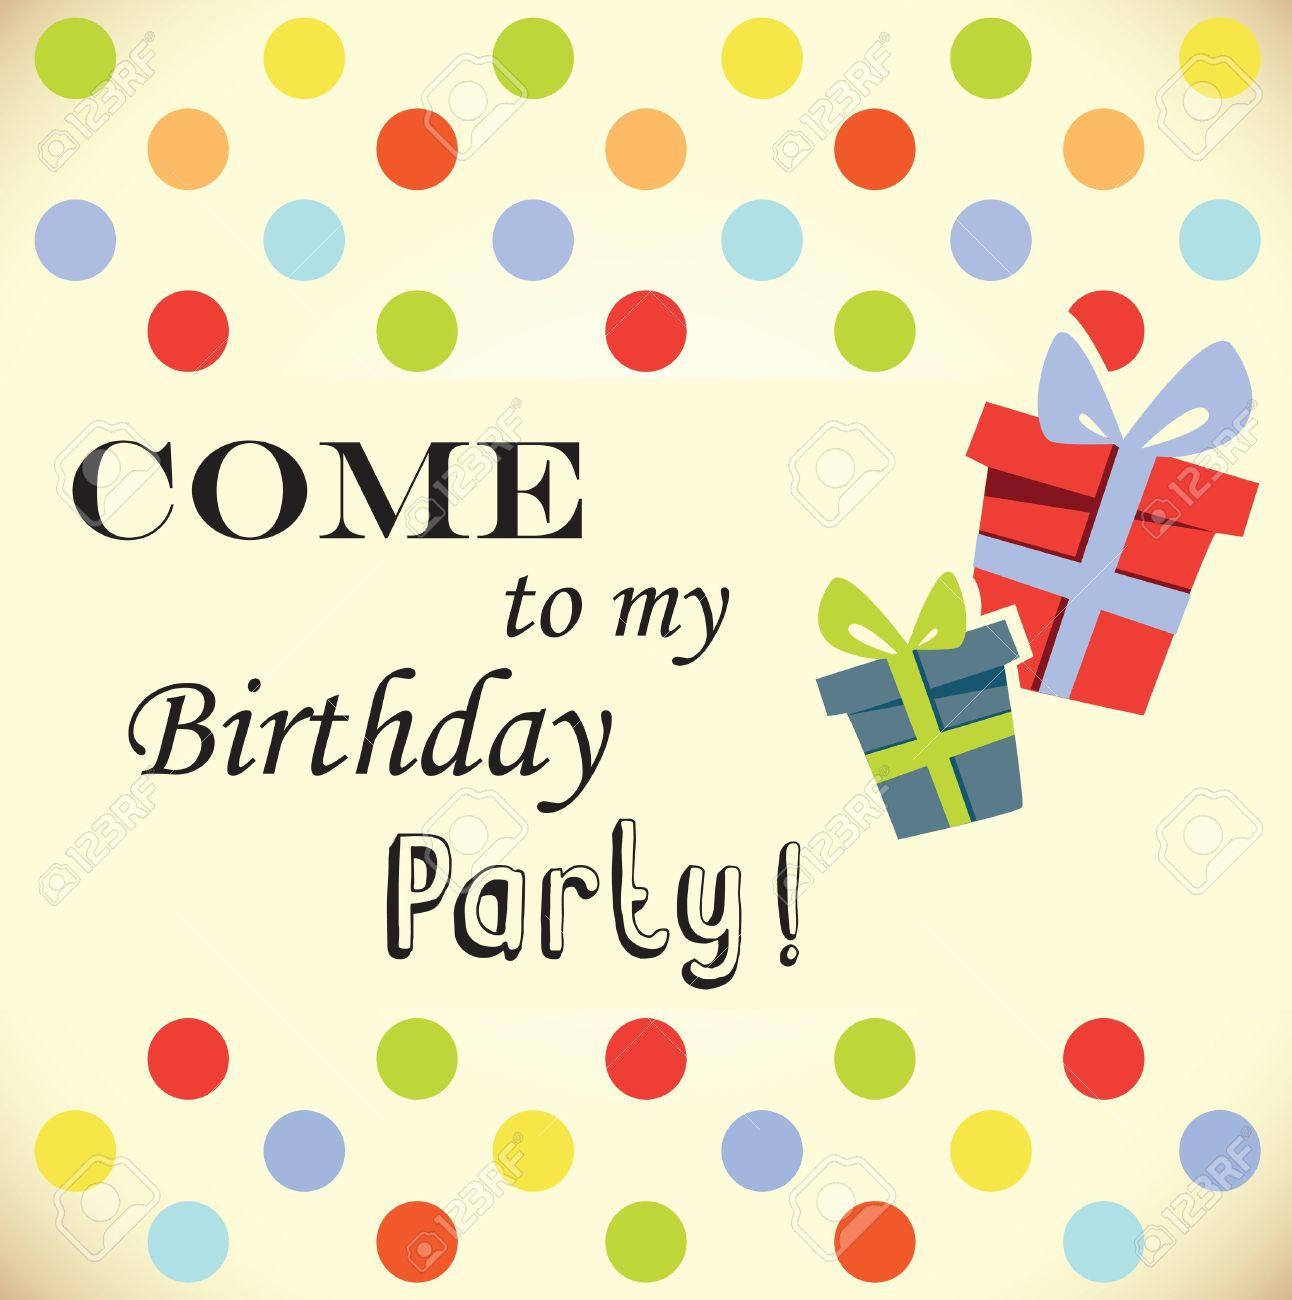 picture of invitation card of birthday ; birthday_party_invitation_card_royalty_free_cliparts_vectors_and_3